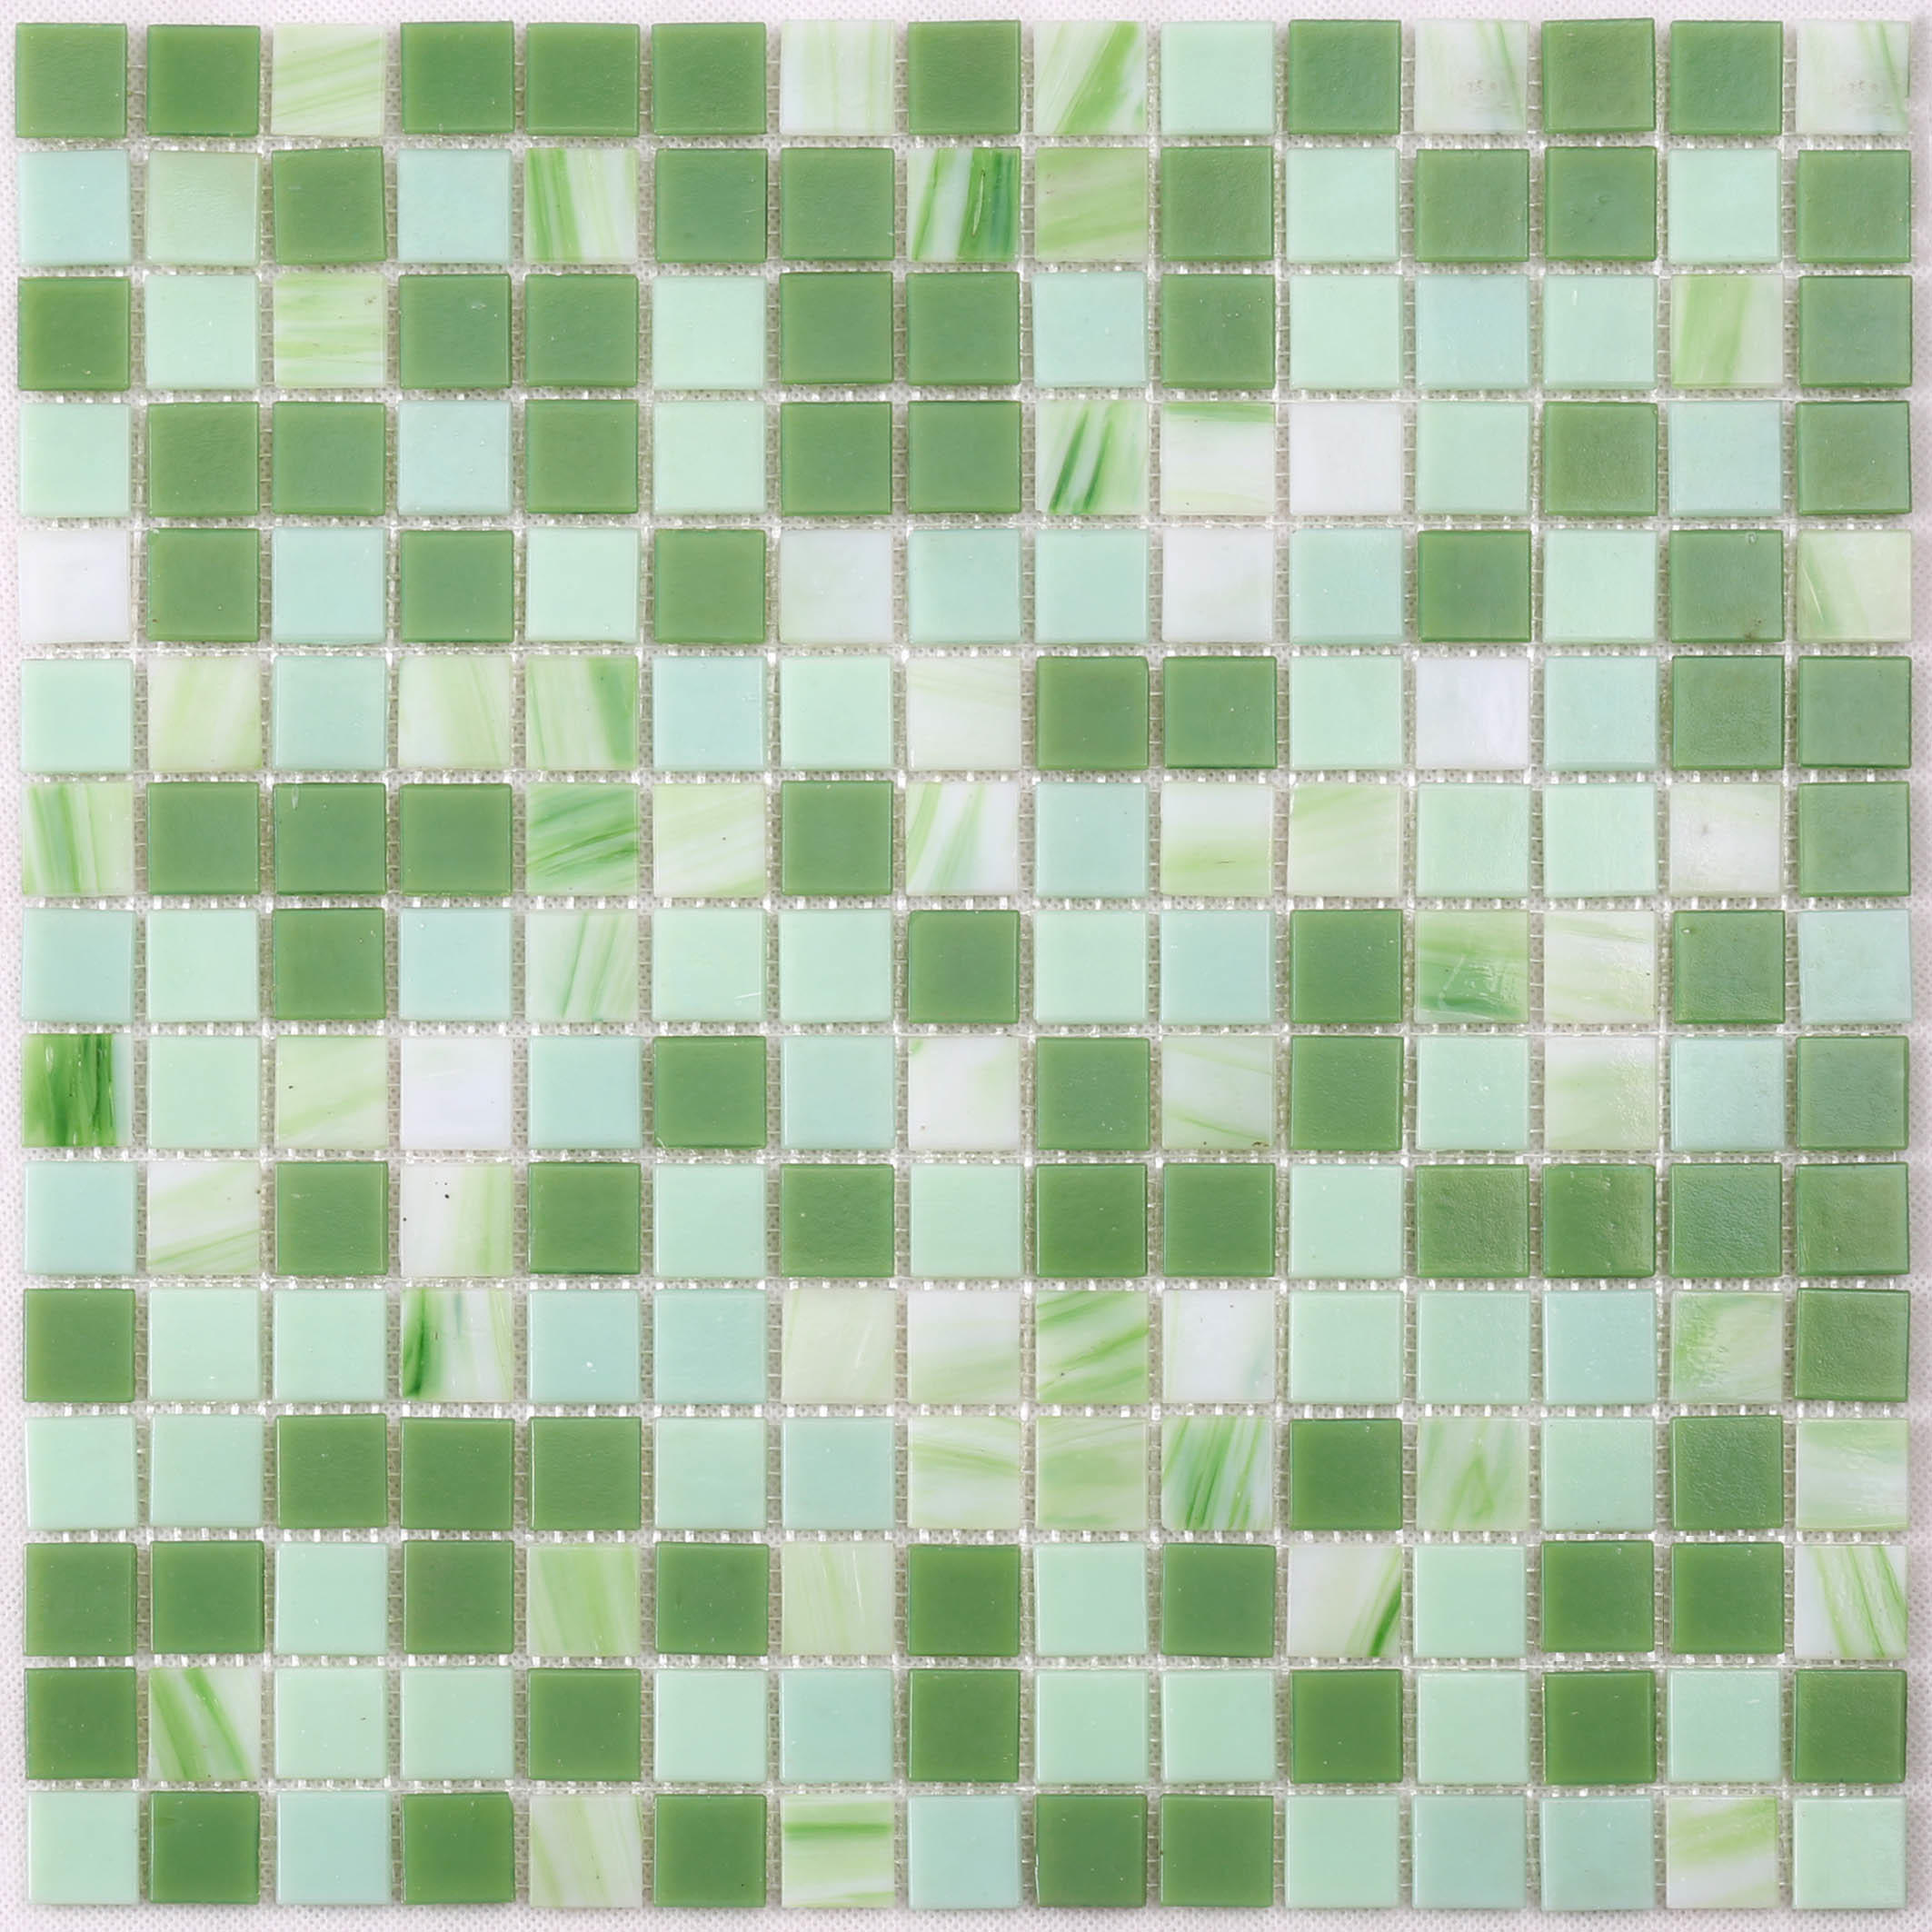 Heng Xing floor ceramic mosaic tile Suppliers for bathroom-2